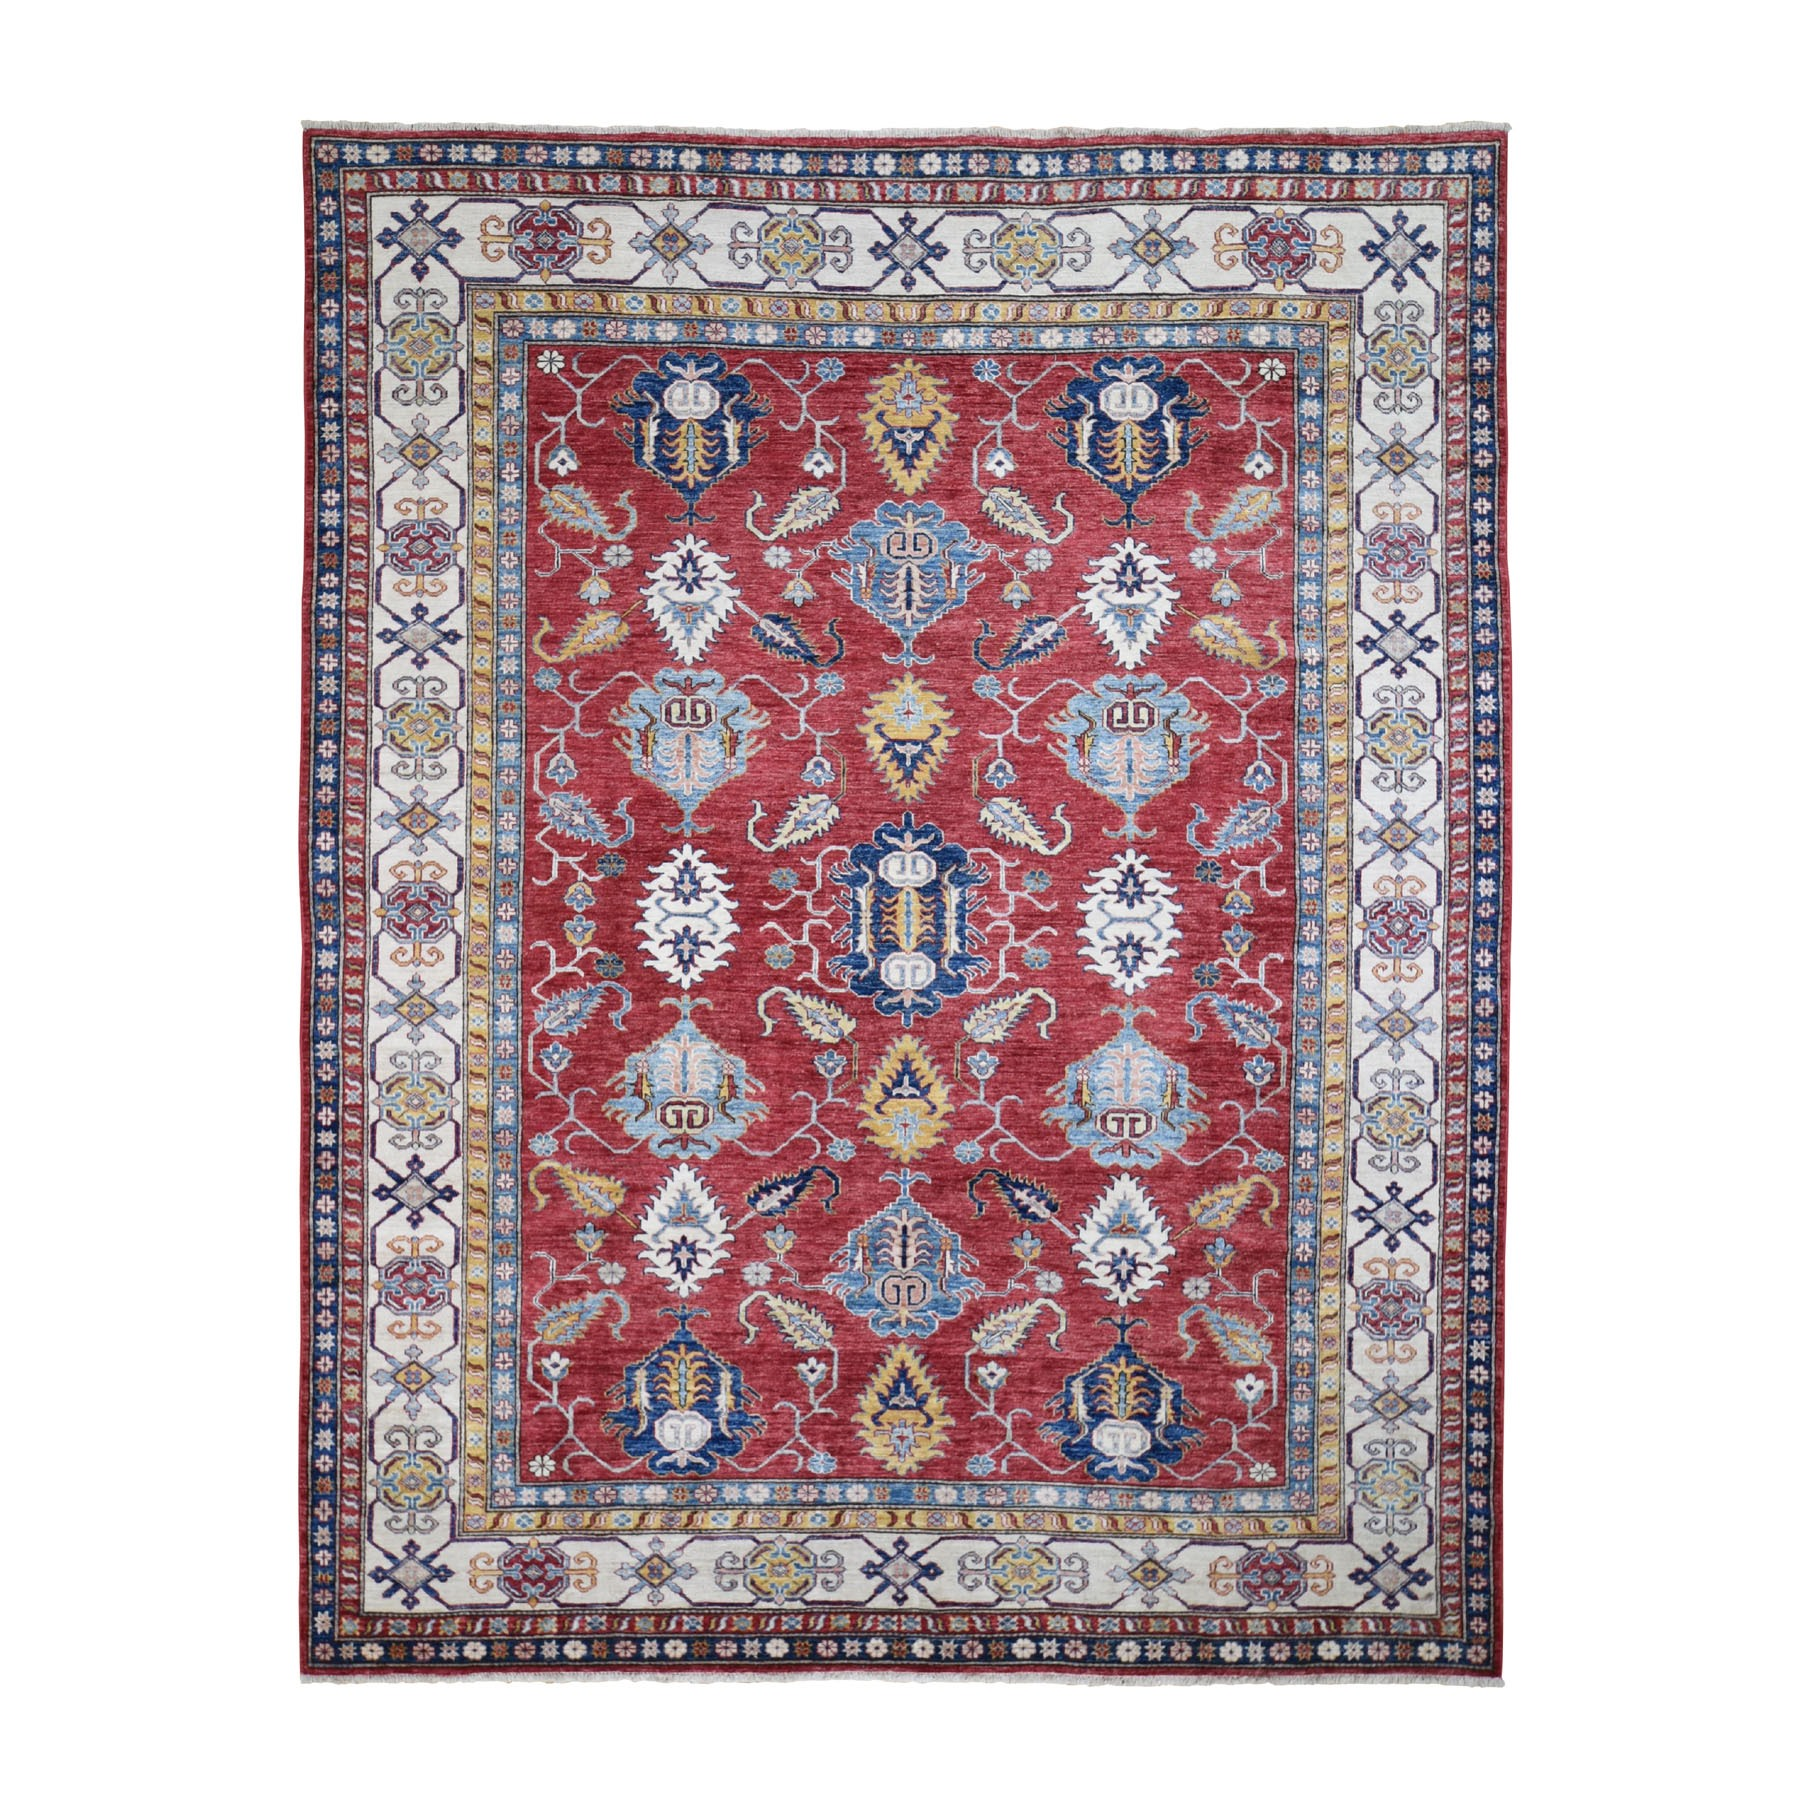 8'x10' Red Super Kazak Tribal Design Hand Woven Pure Wool Oriental Rug